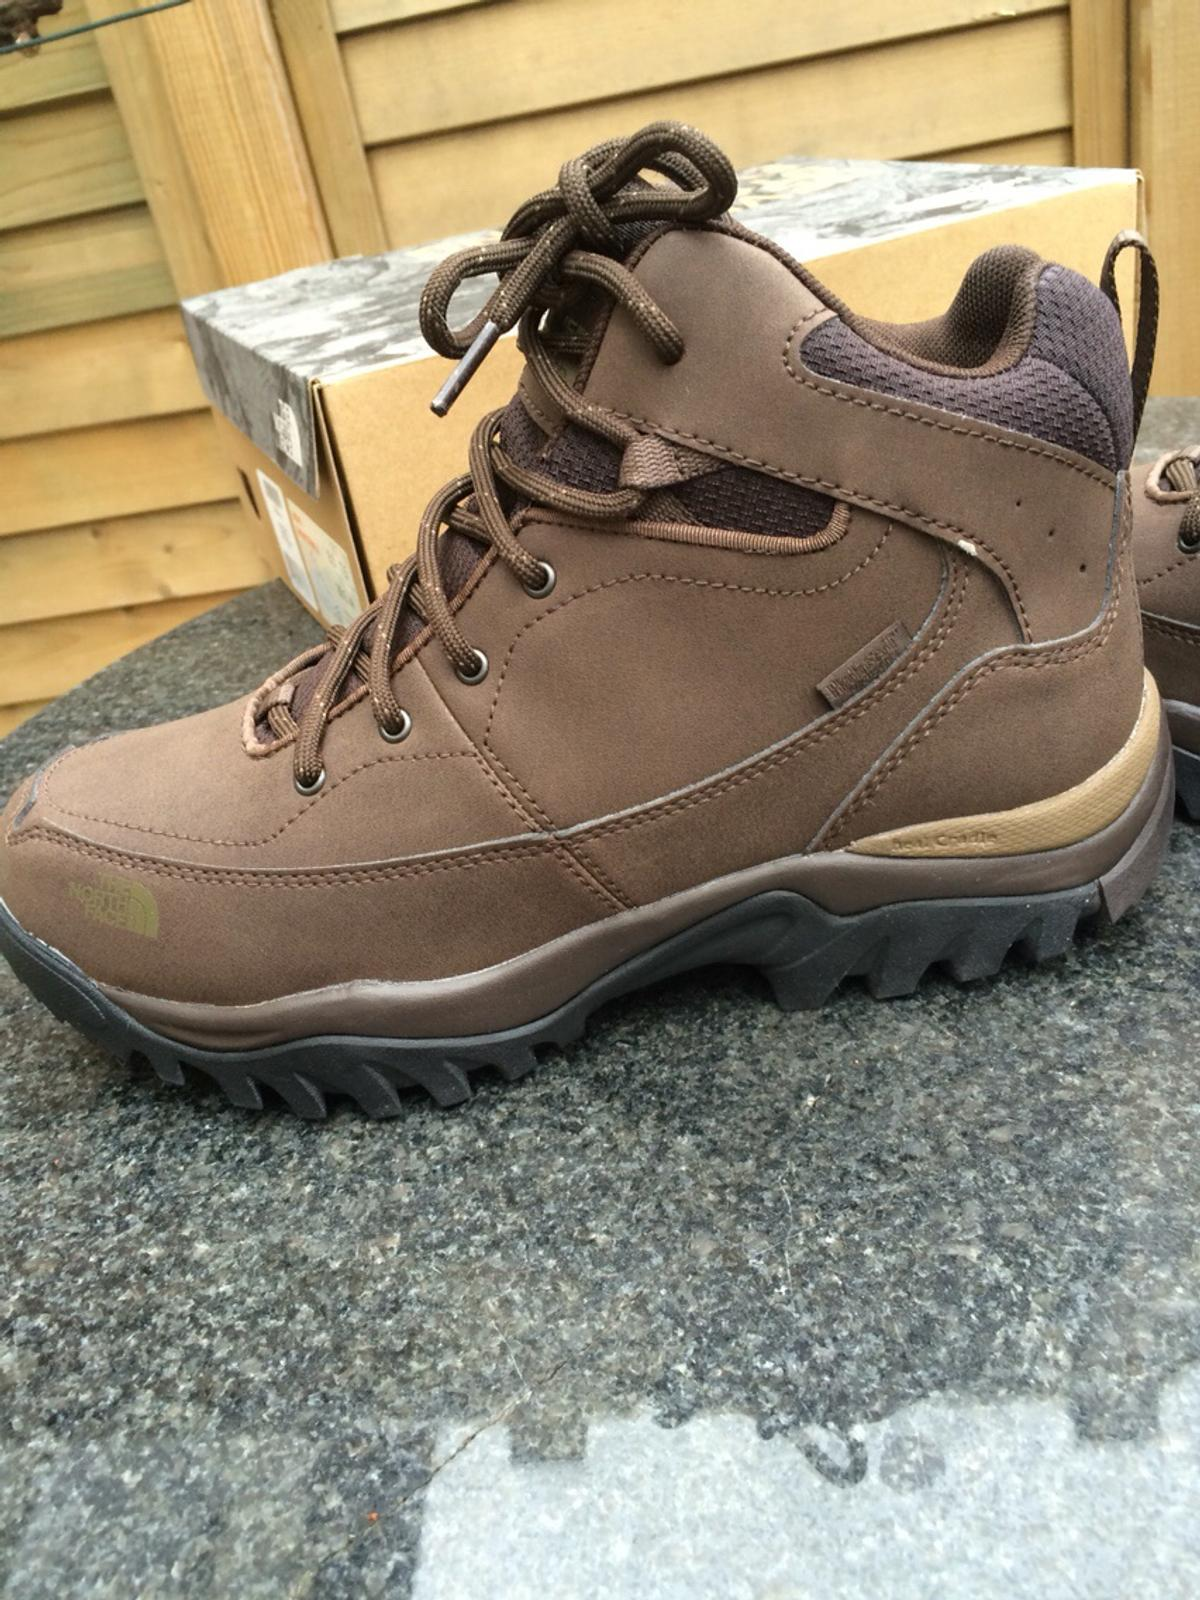 The North Face Wanderschuhe in 72555 Metzingen für € 70,00